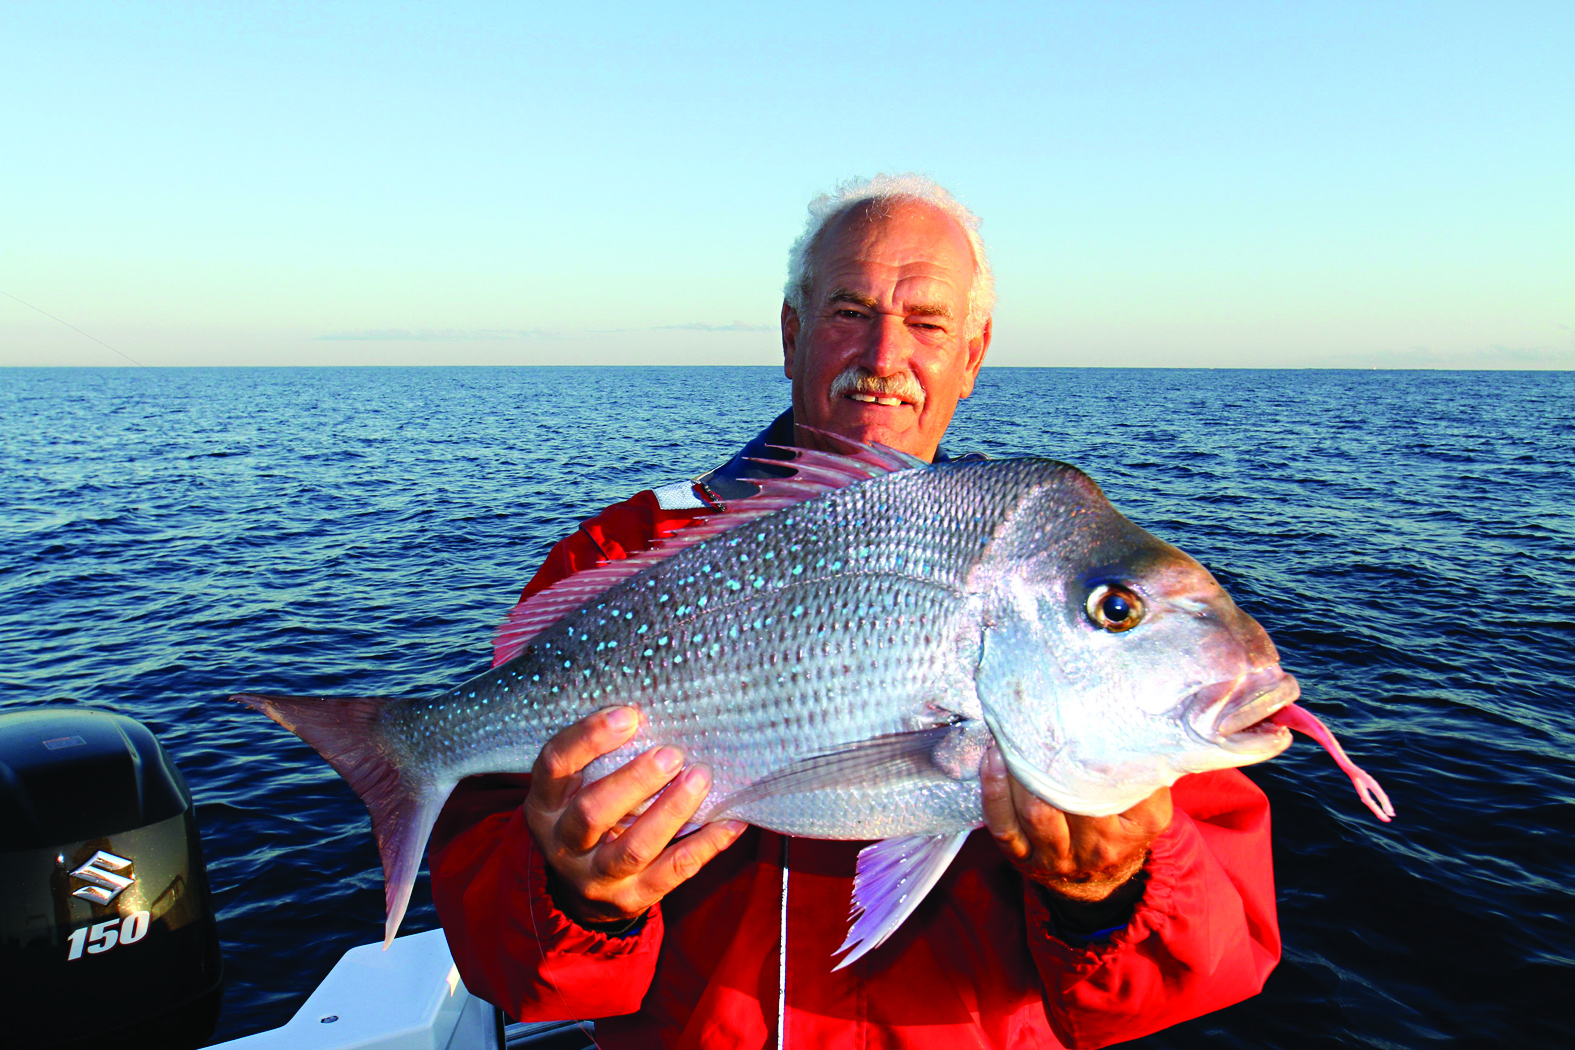 the first snapper caught by Frank Oostenbroek in the new boat.